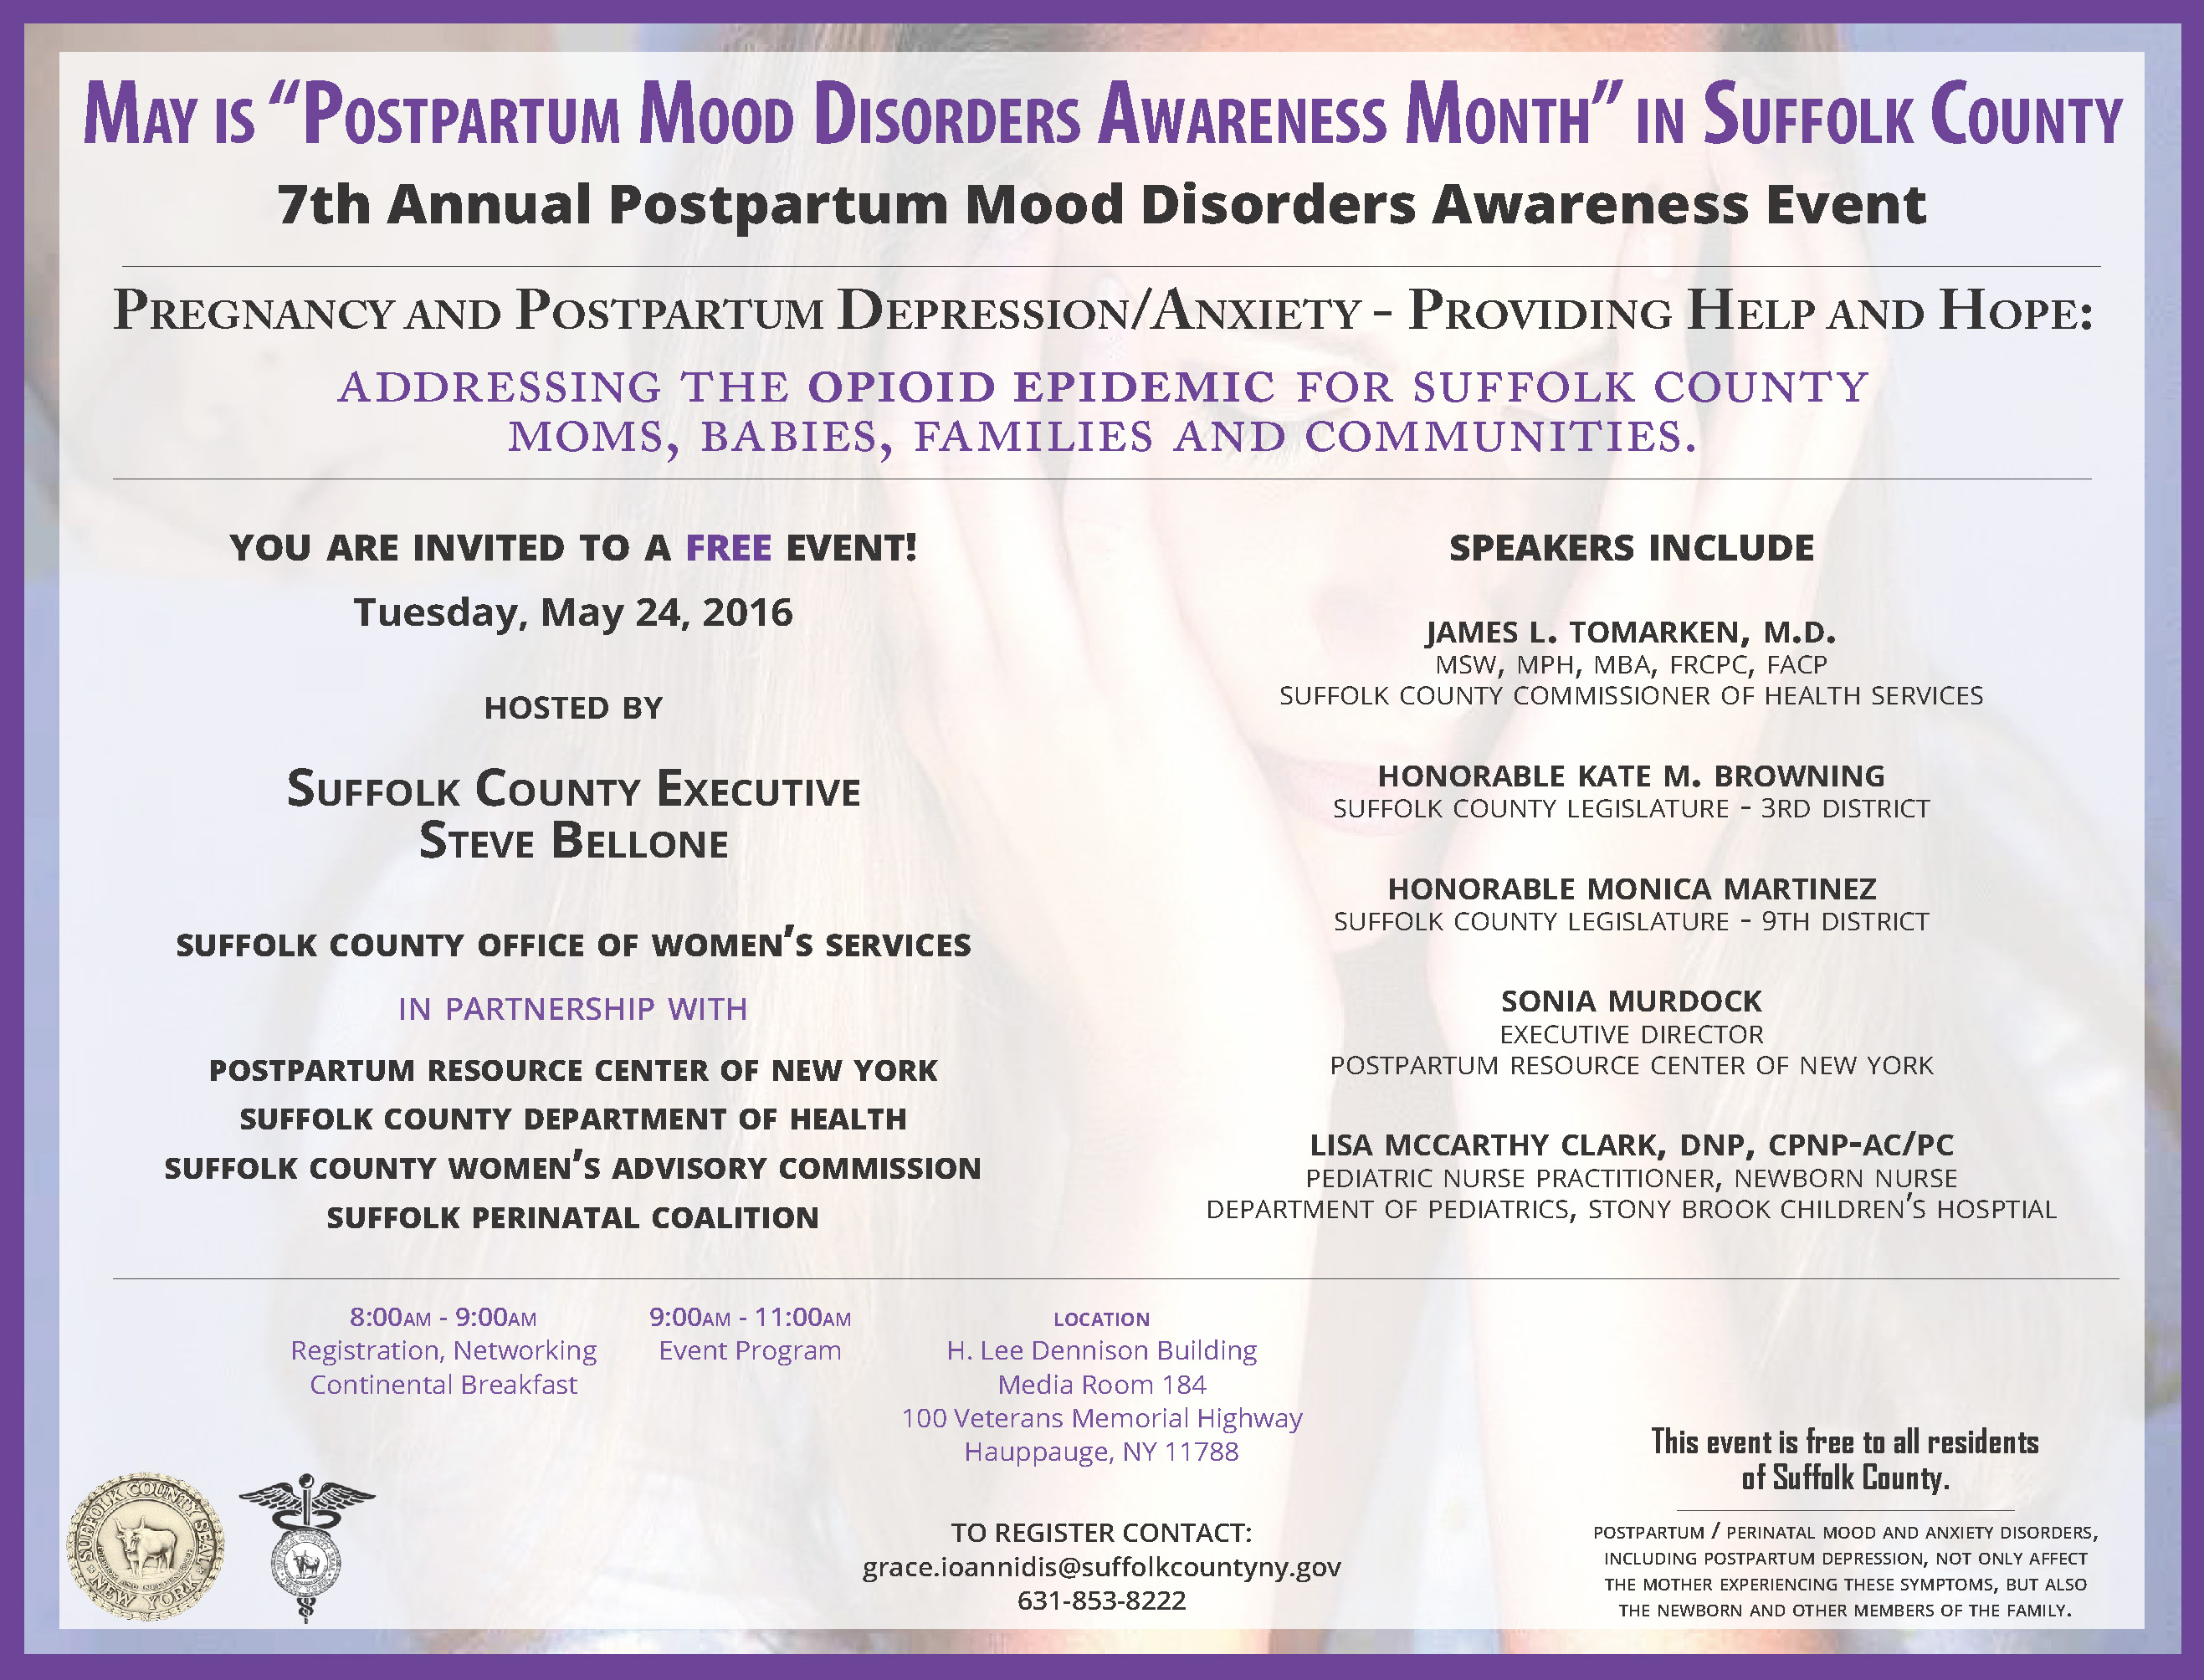 "May is ""Postpartum Mood Disorders Awareness Month"" in Suffolk County. 7th Annual Postpartum Mood Disorders Awareness Event Flyer - May 24, 2016"